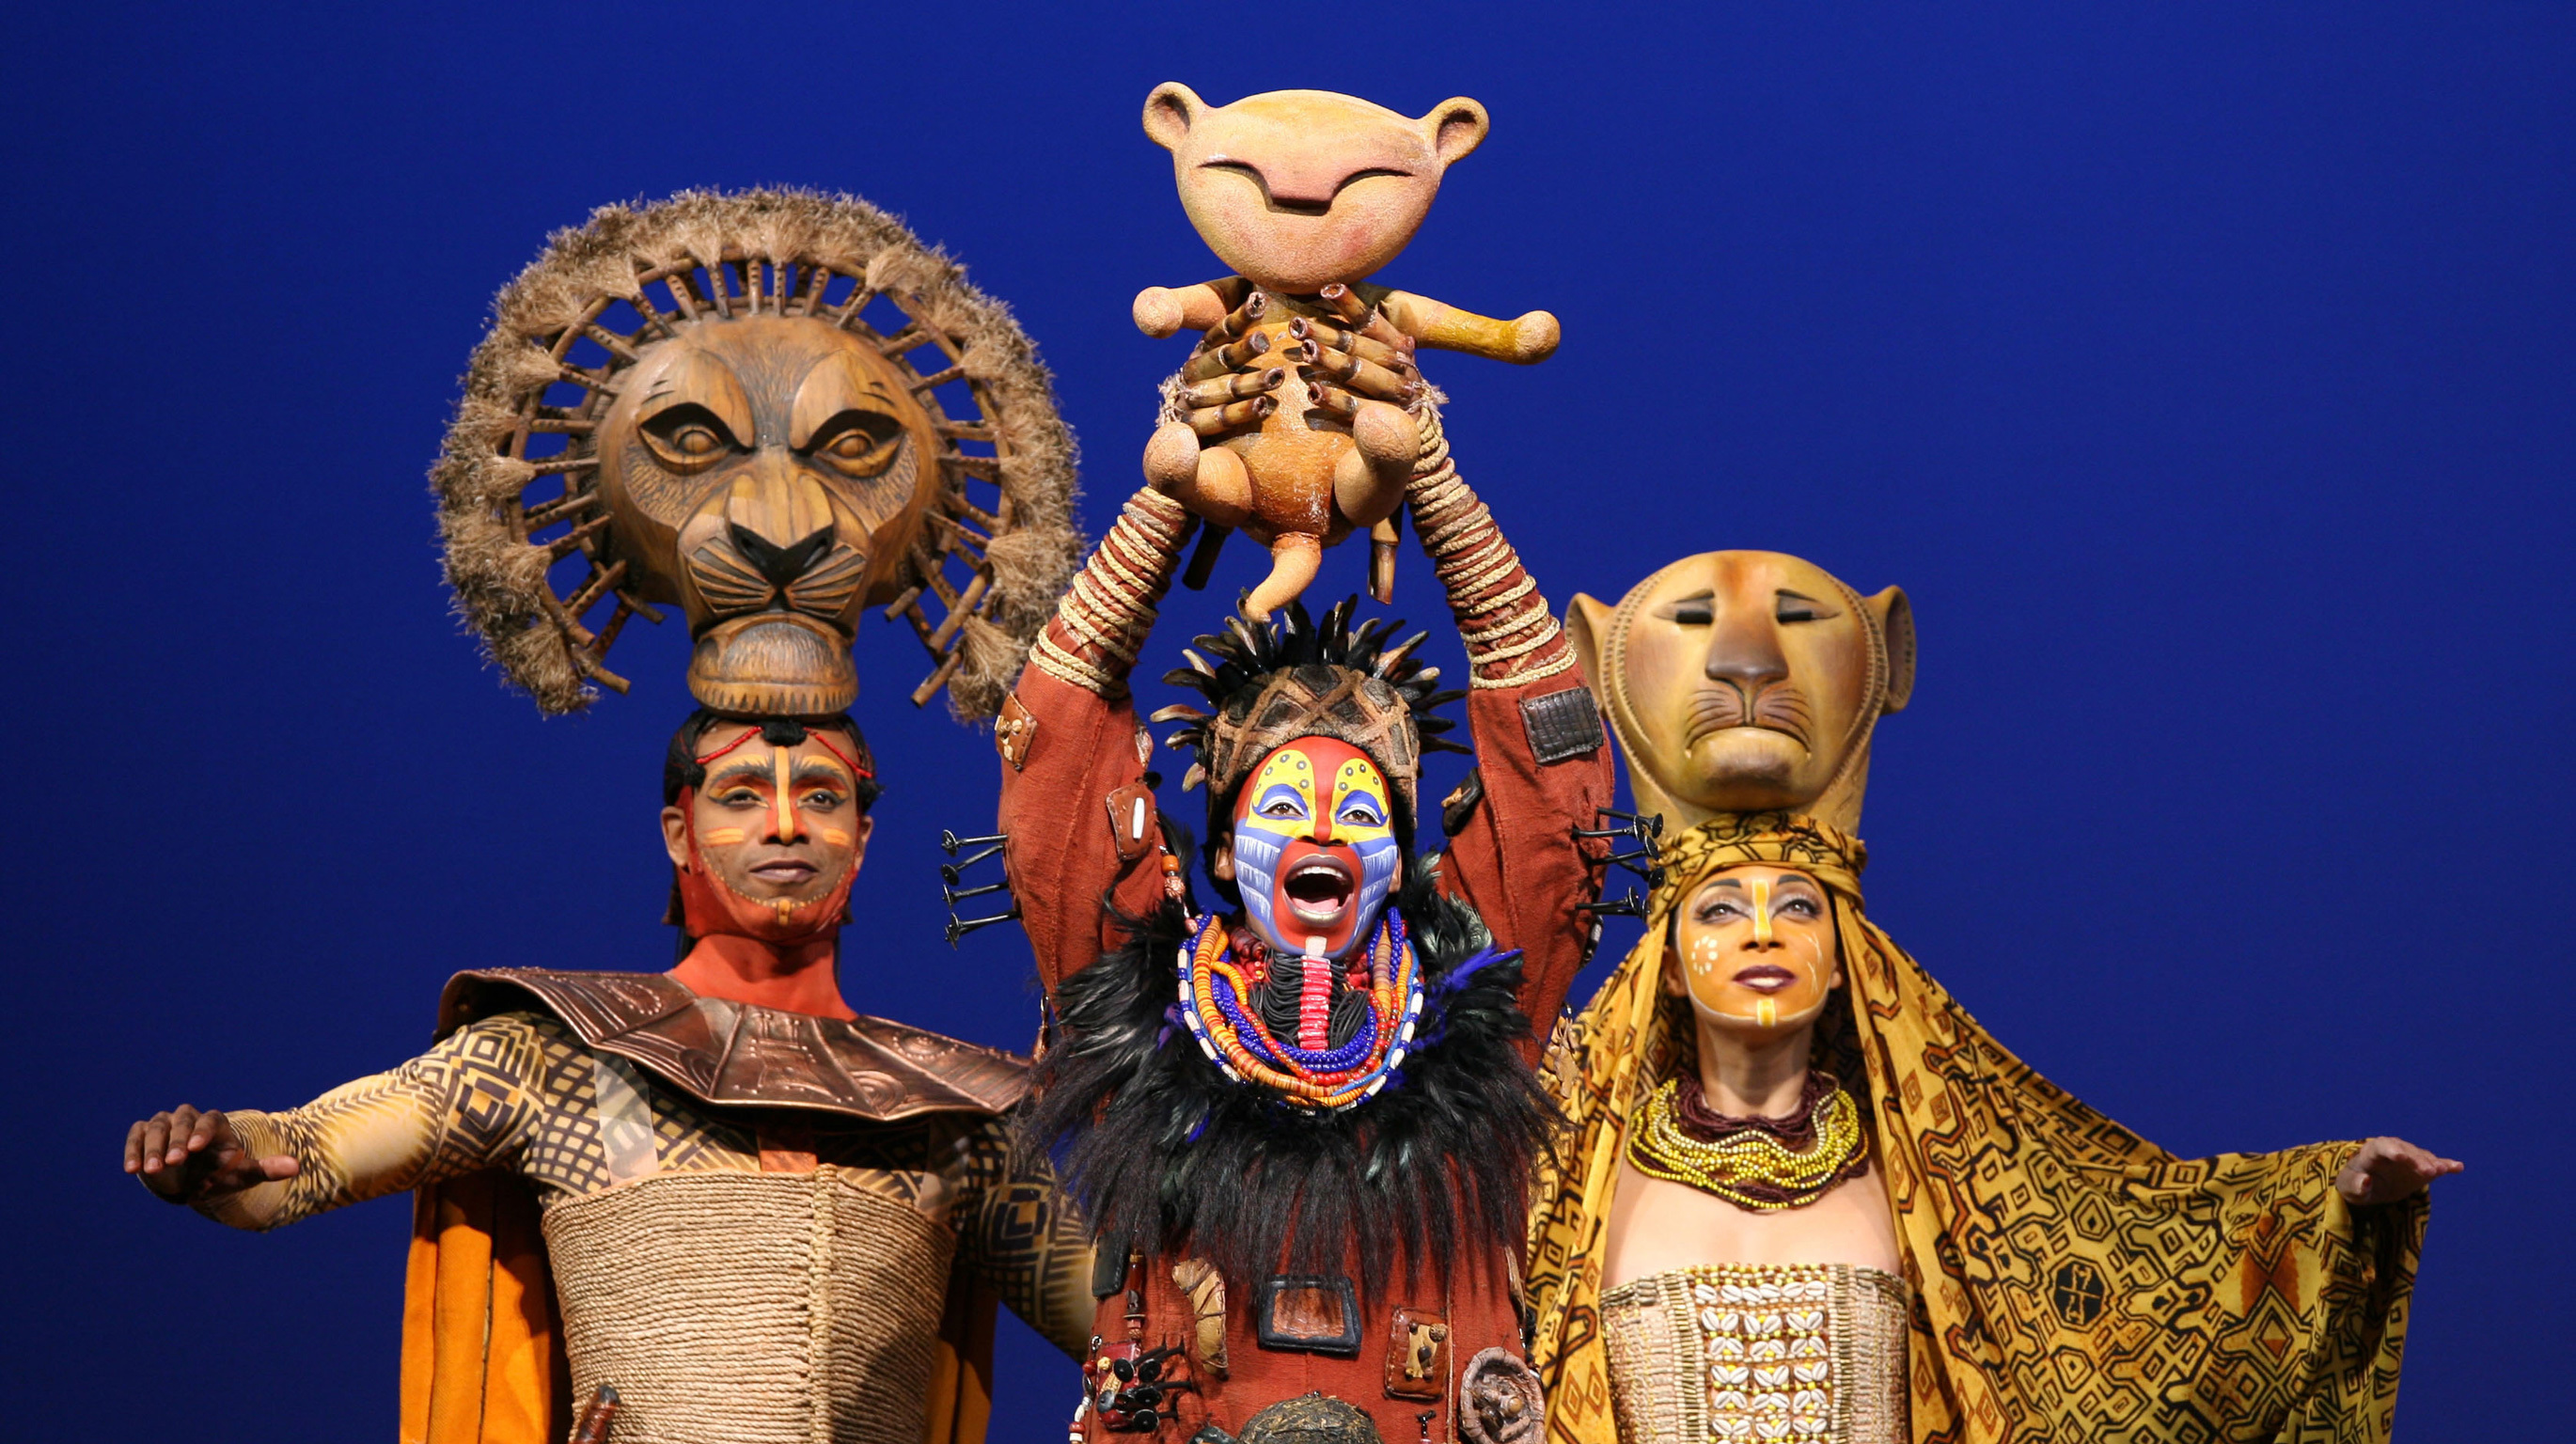 BEC-Tero is bringing award-winning musical The Lion King to Bangkok in Sep